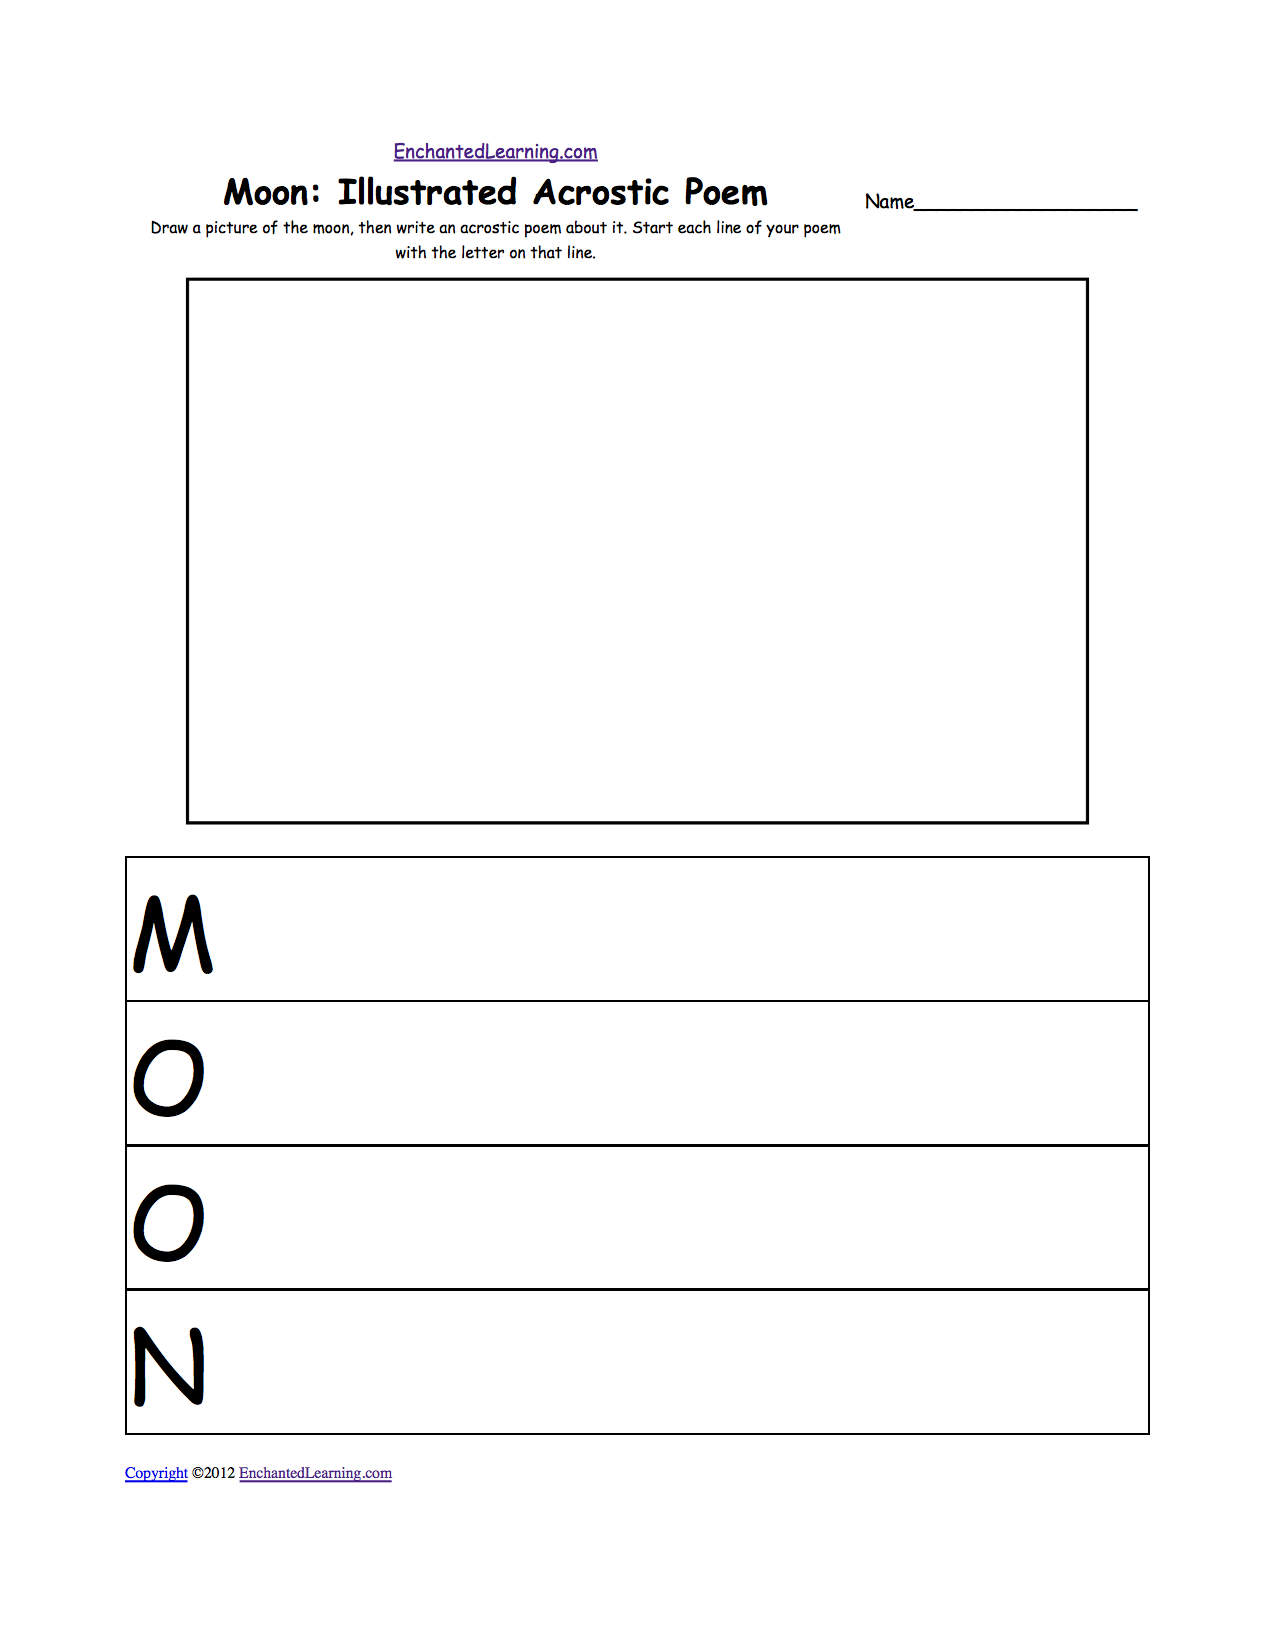 Worksheets Planet Earth Worksheets astronomy and space k 3 theme page at enchantedlearning com